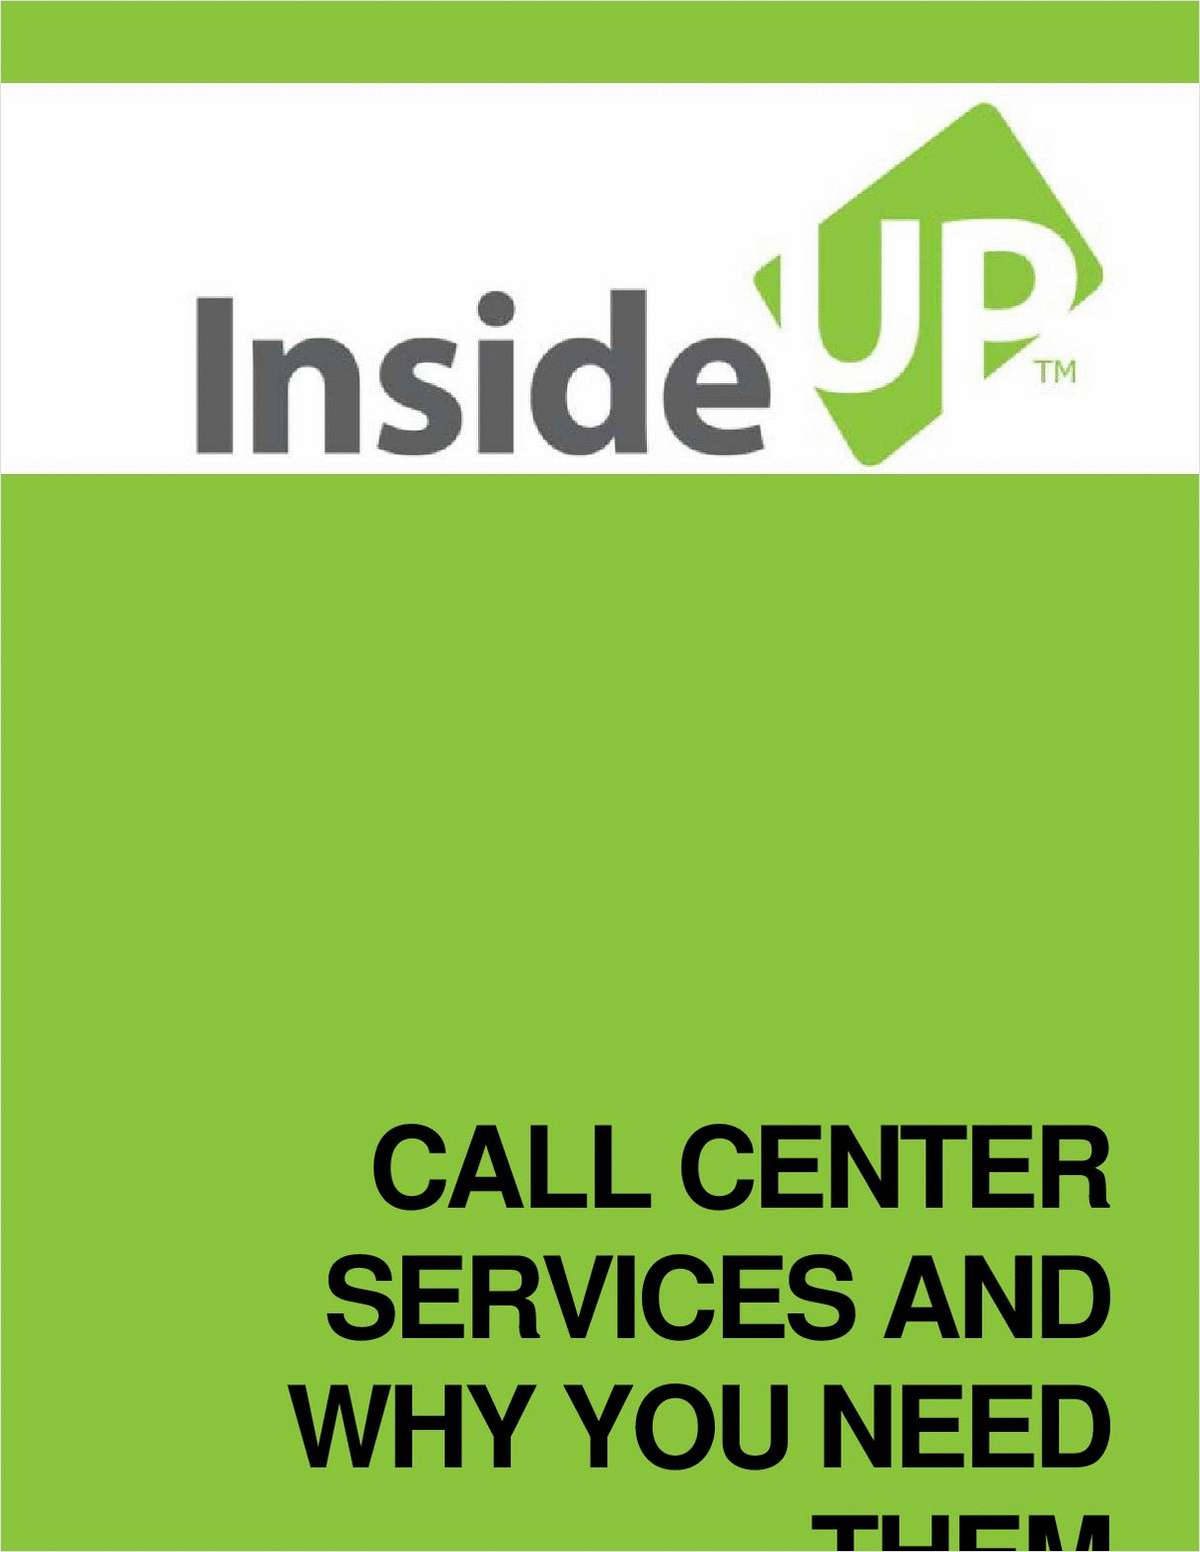 Call Center Services and Why You Need Them